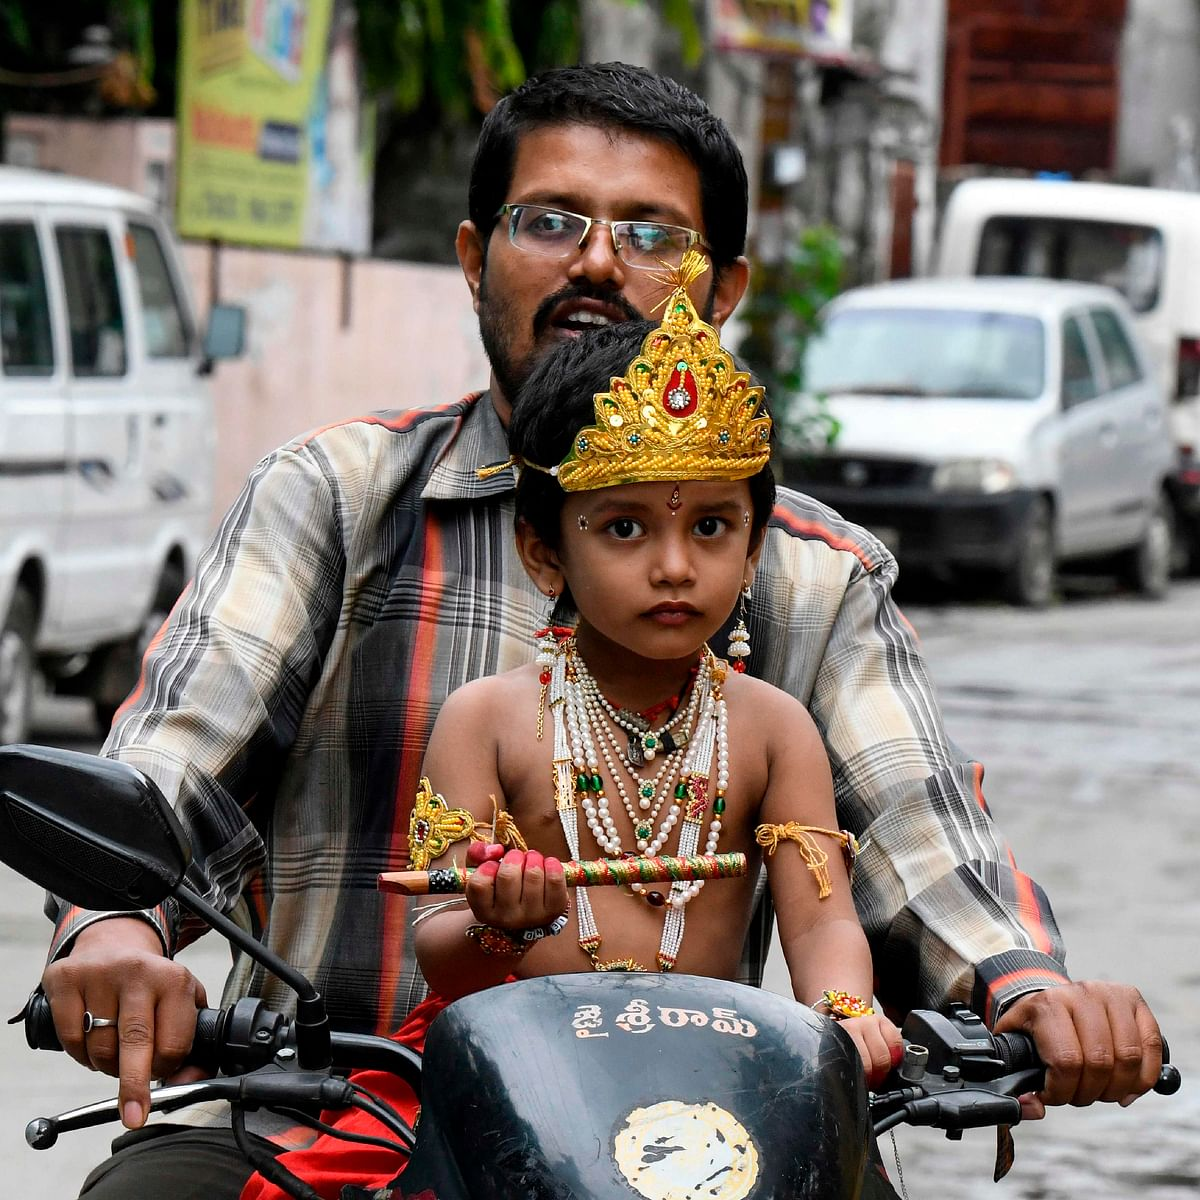 In Pics: From Krishna on bike, to royal thrones; here's how nation is prepping for Janmashtami